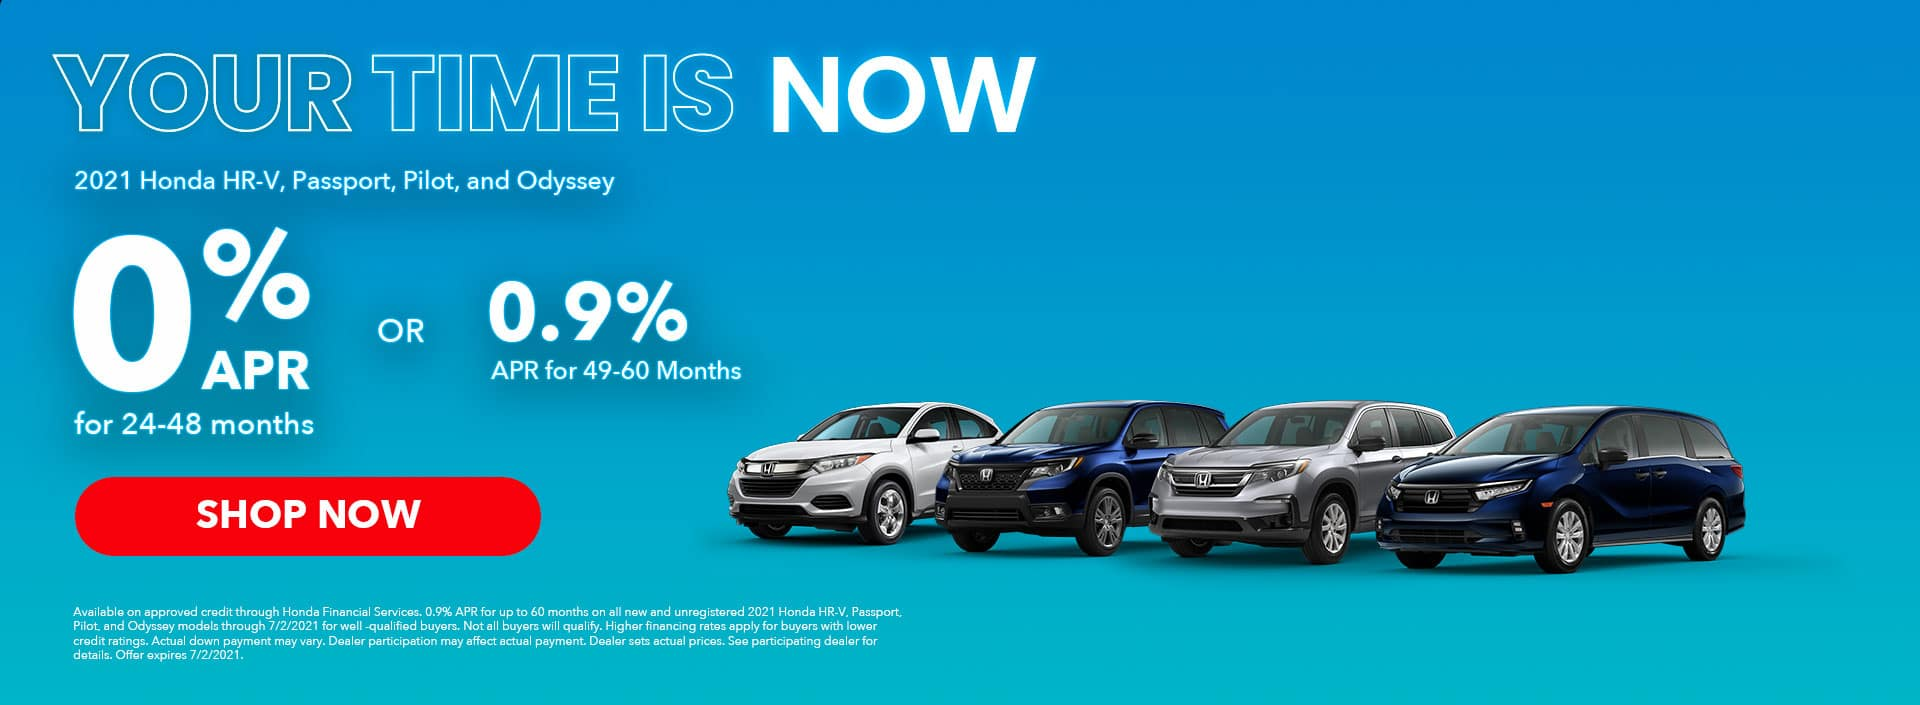 0% APR for 24-48 months OR 0.9% APR for 49-60 months 2021 Honda HR-V, Passport, Pilot, and Odyssey